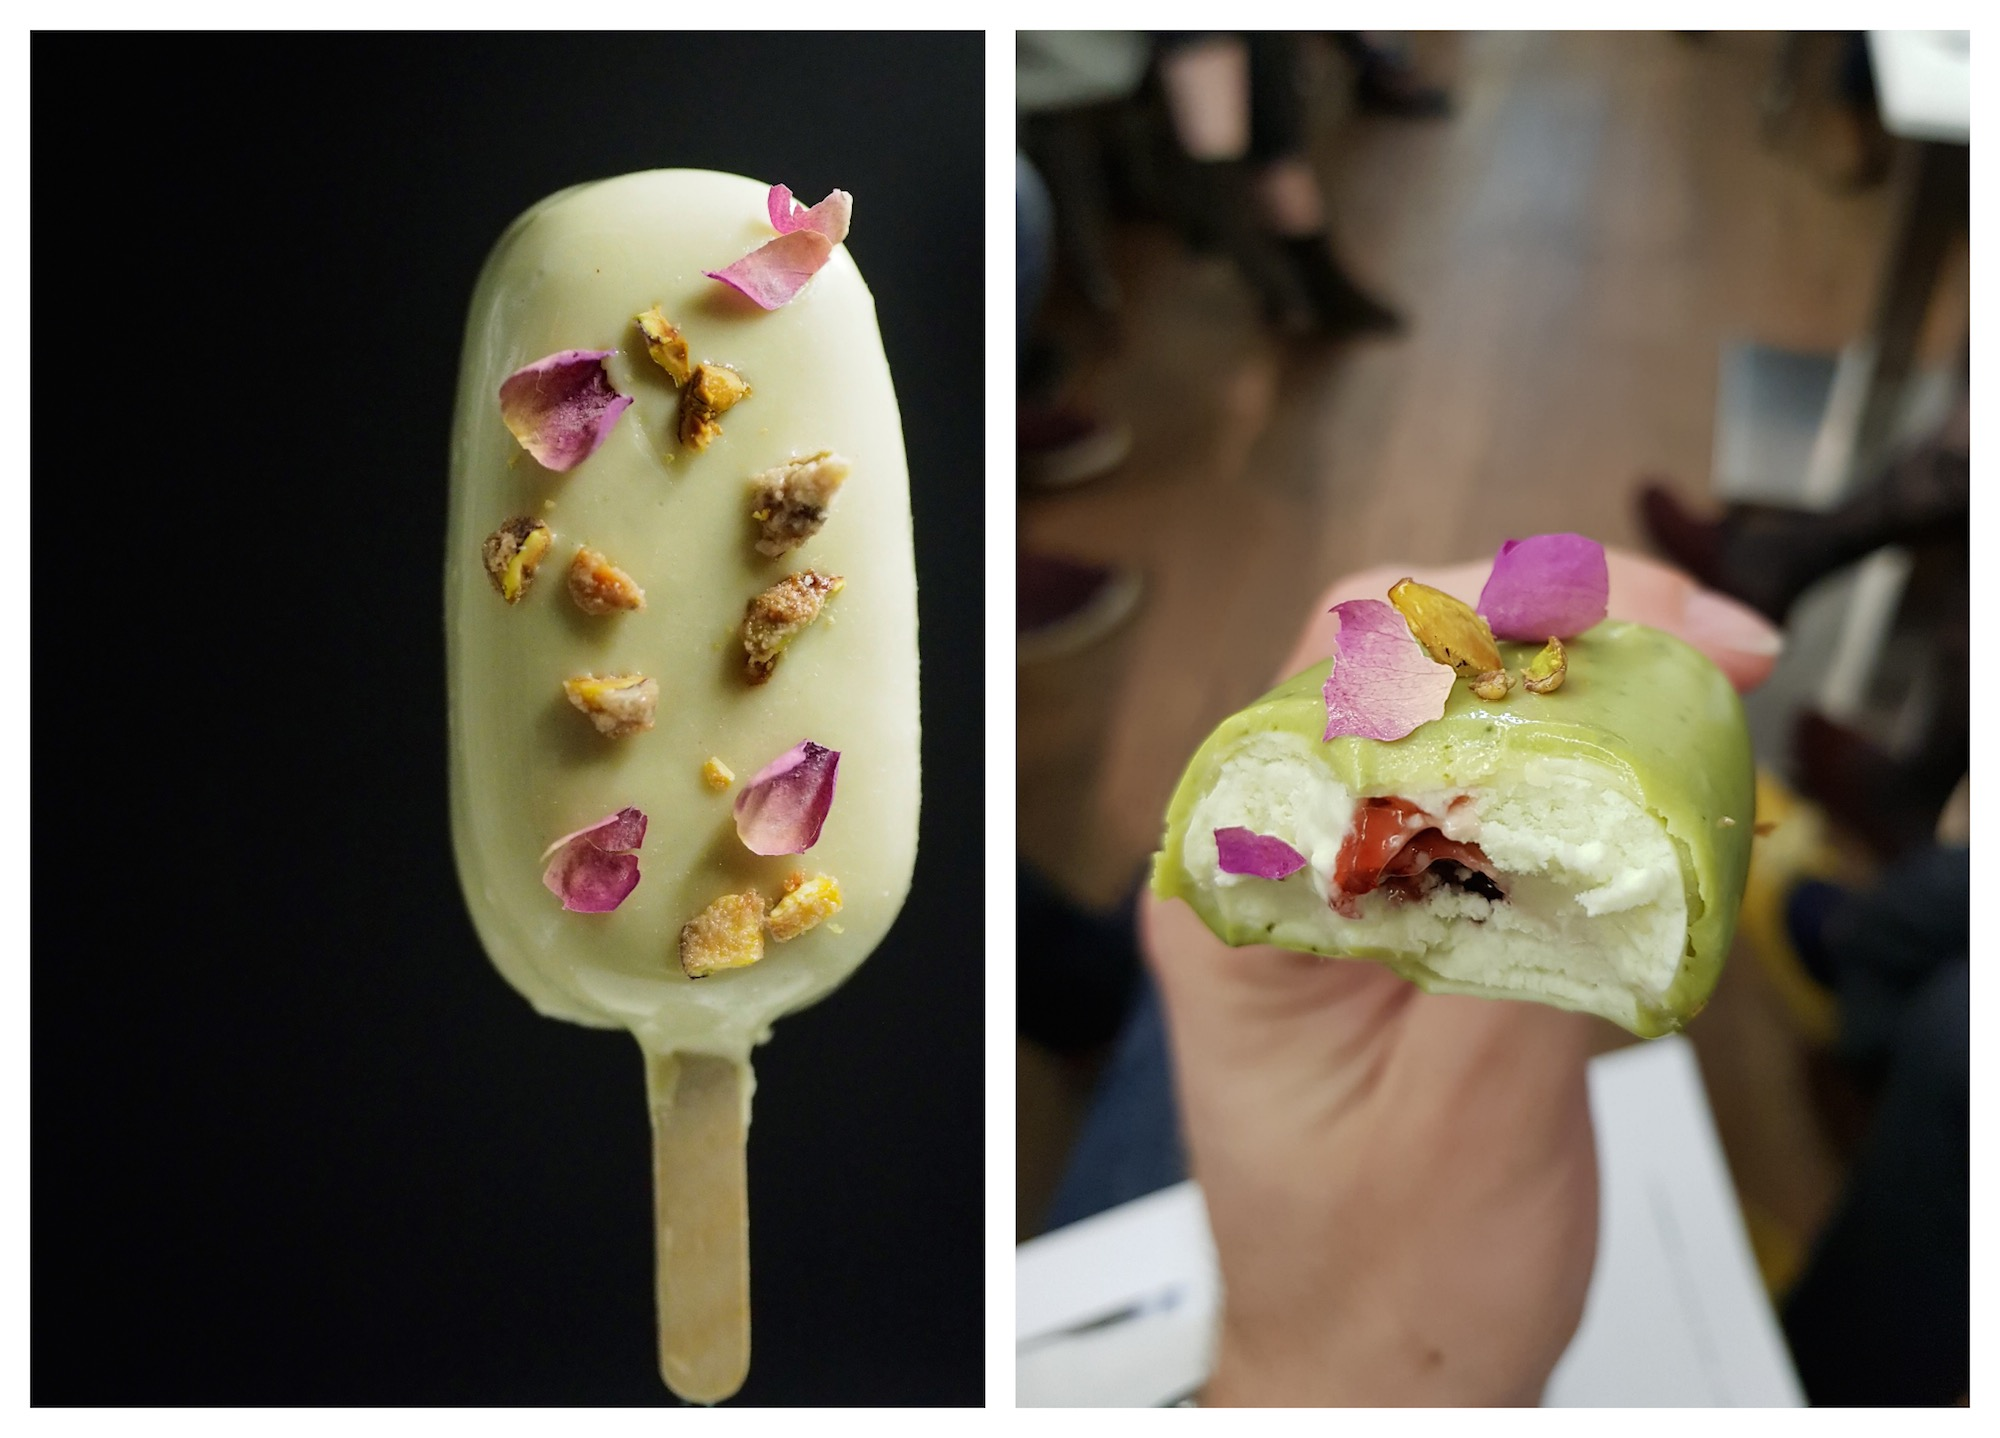 For the best homemade ice cream in Paris with creative flavors go to Une Glace à Paris.